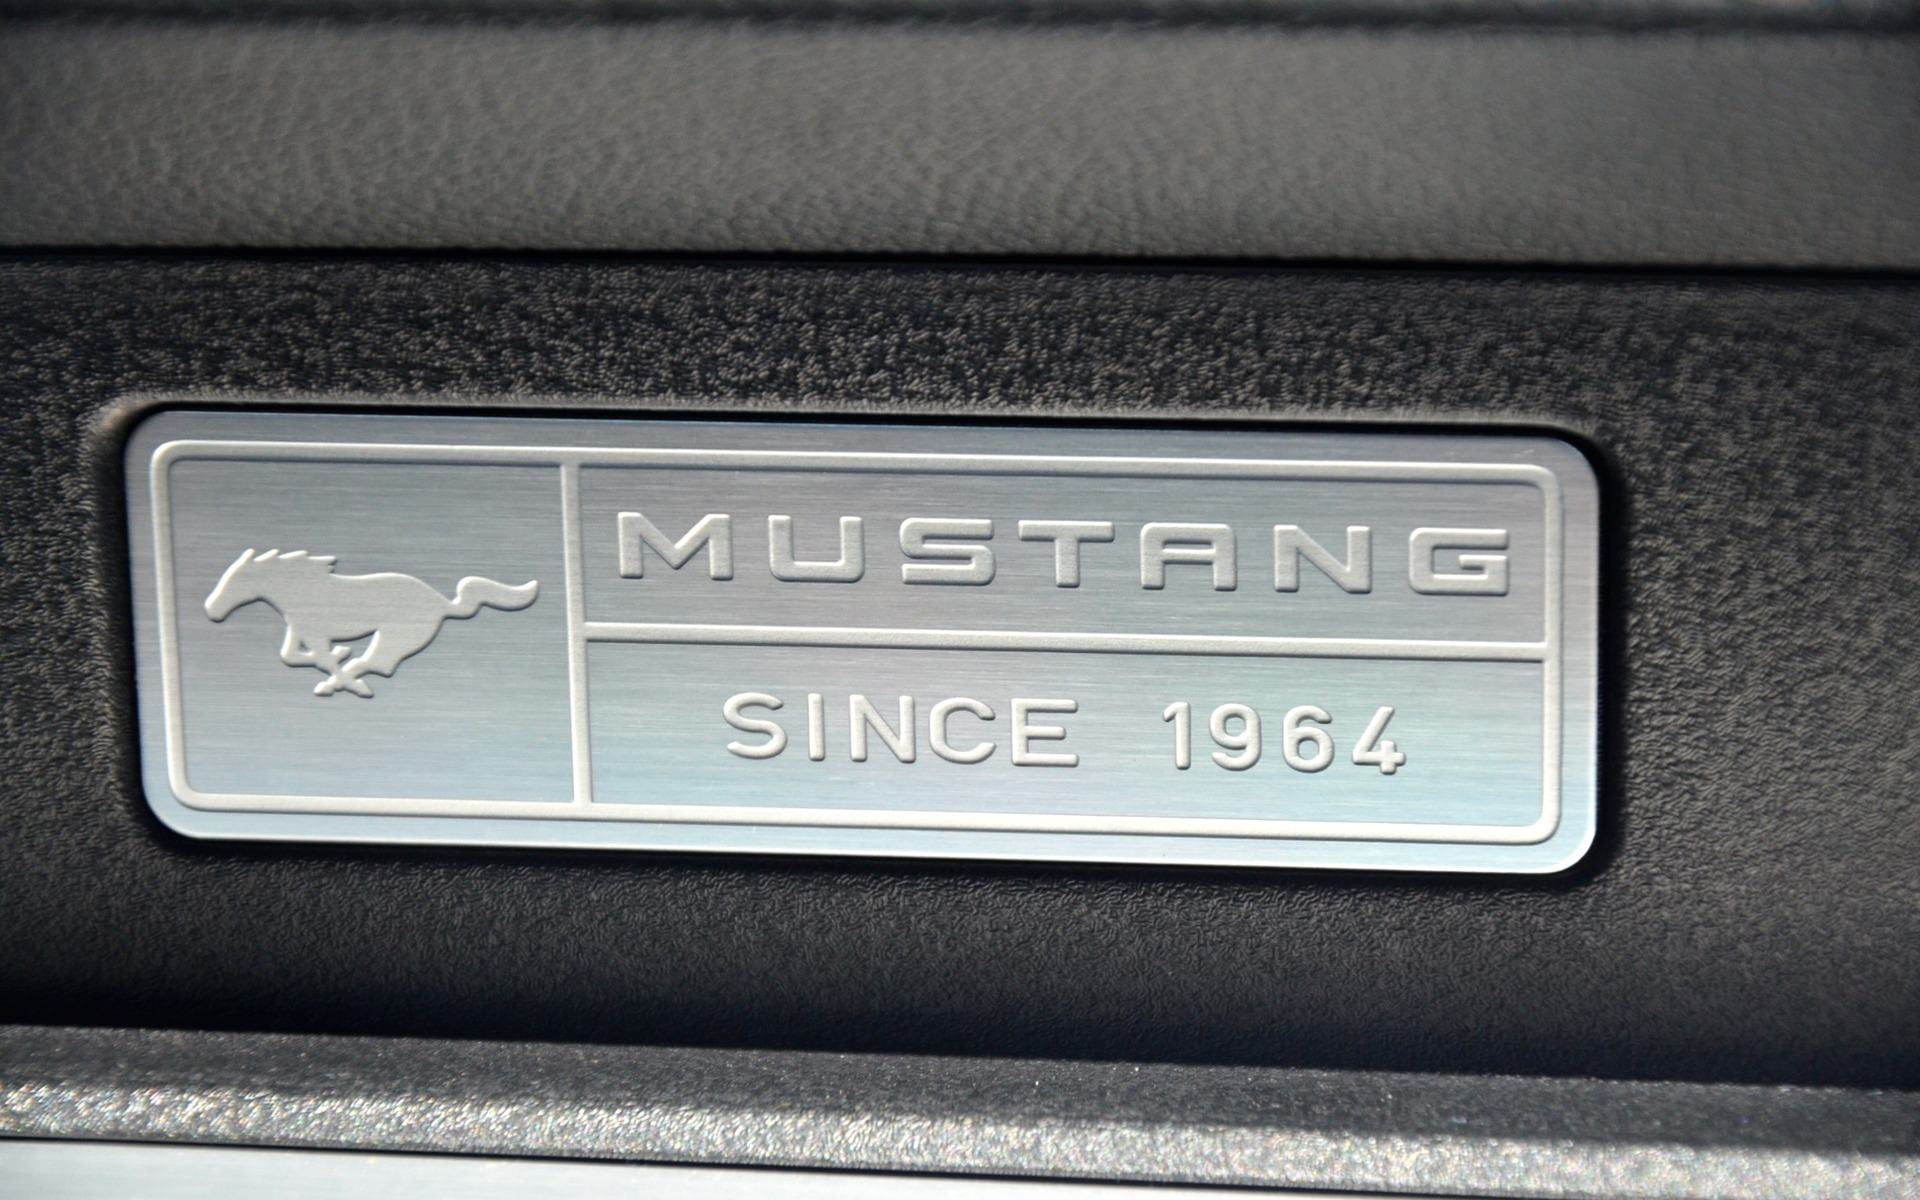 2015 Ford Mustang - A Brave New World - 21/30